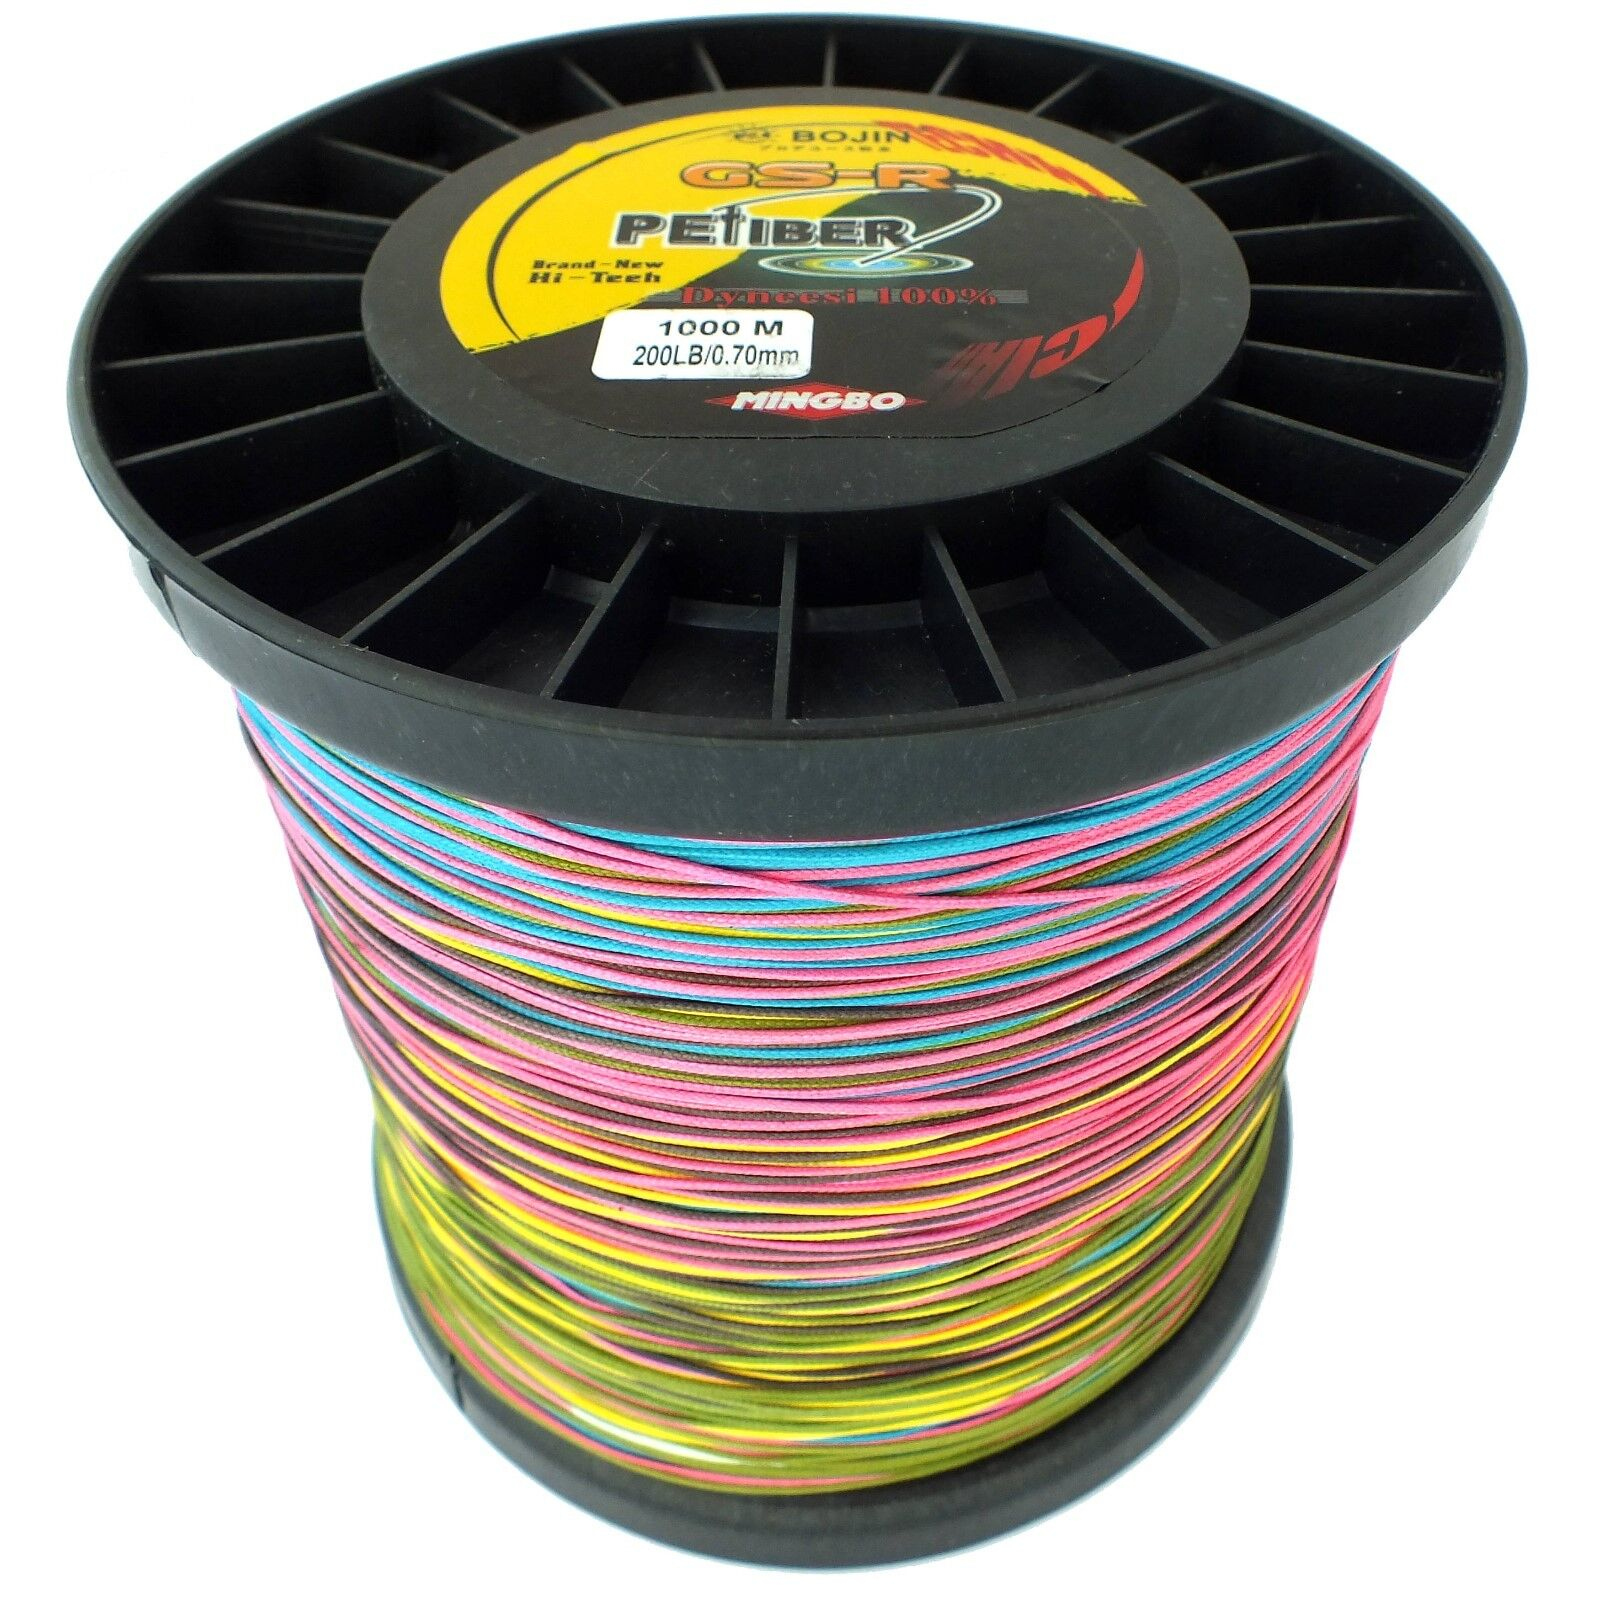 GSR PEFIBER BRAID DYNEESI FISHING LINE 200LB 1000M 5 COLOUR WINCH ELECTRIC REEL